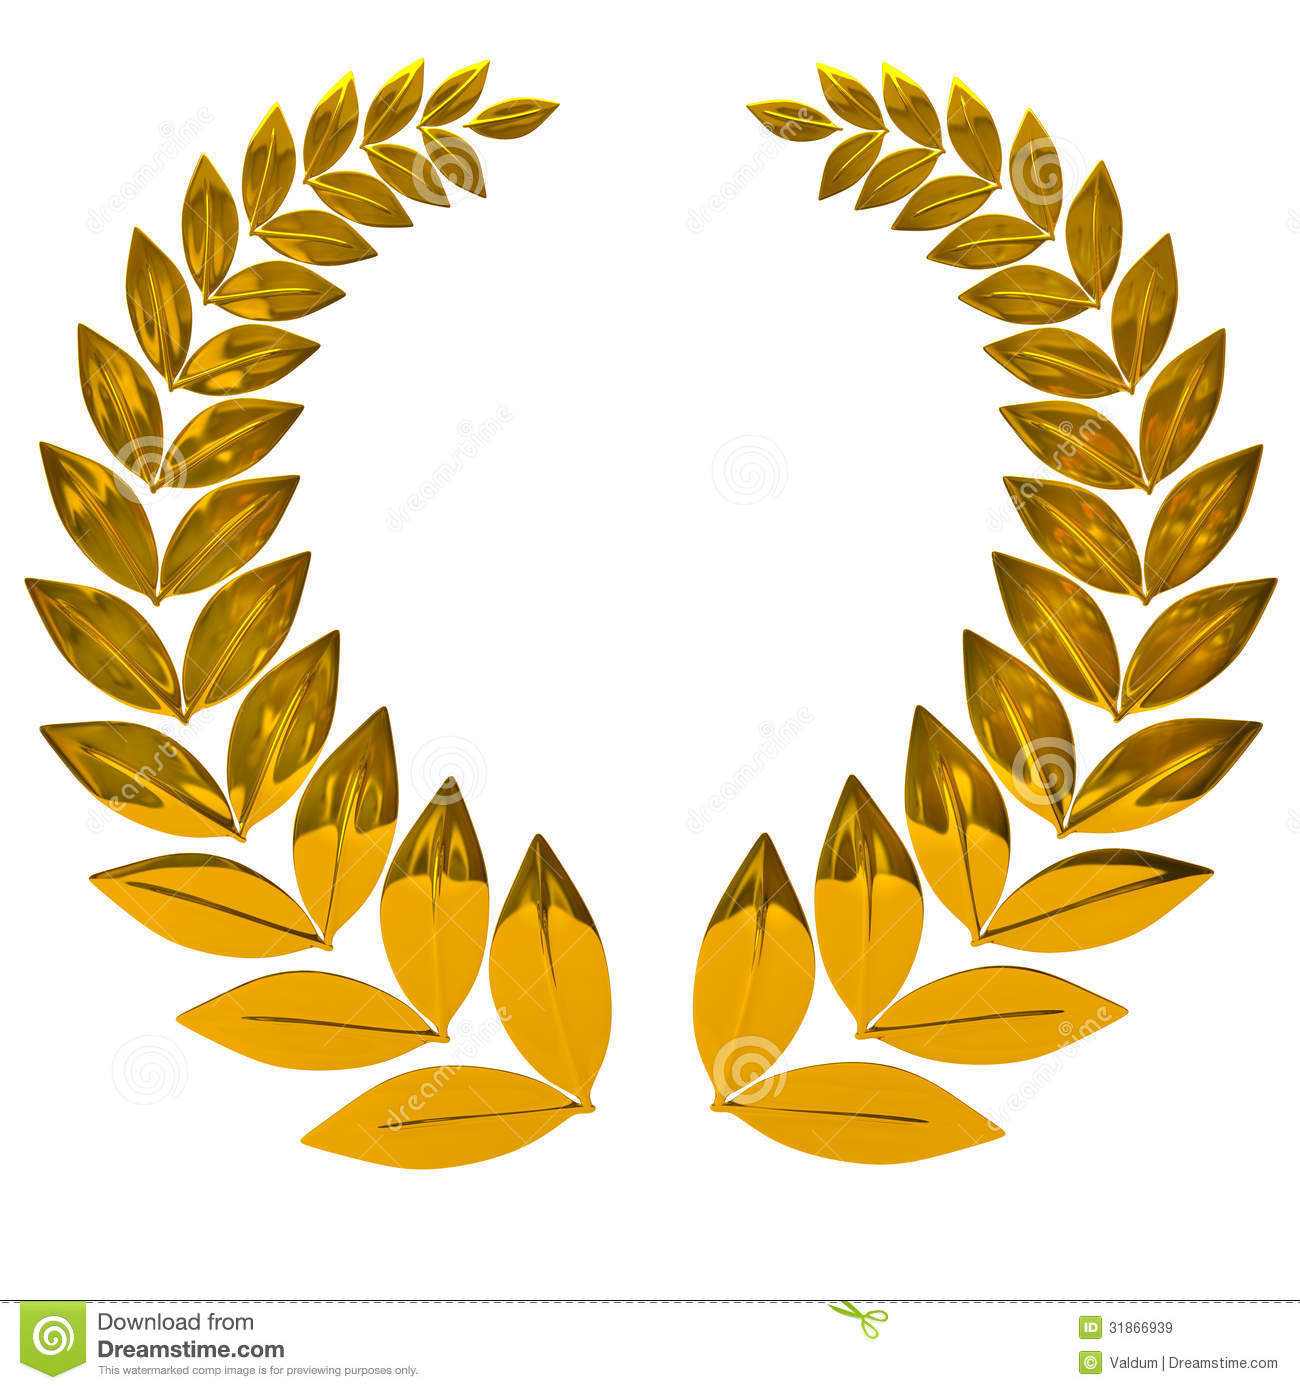 Award wreath clipart yellow clipground for Laurel leaf crown template